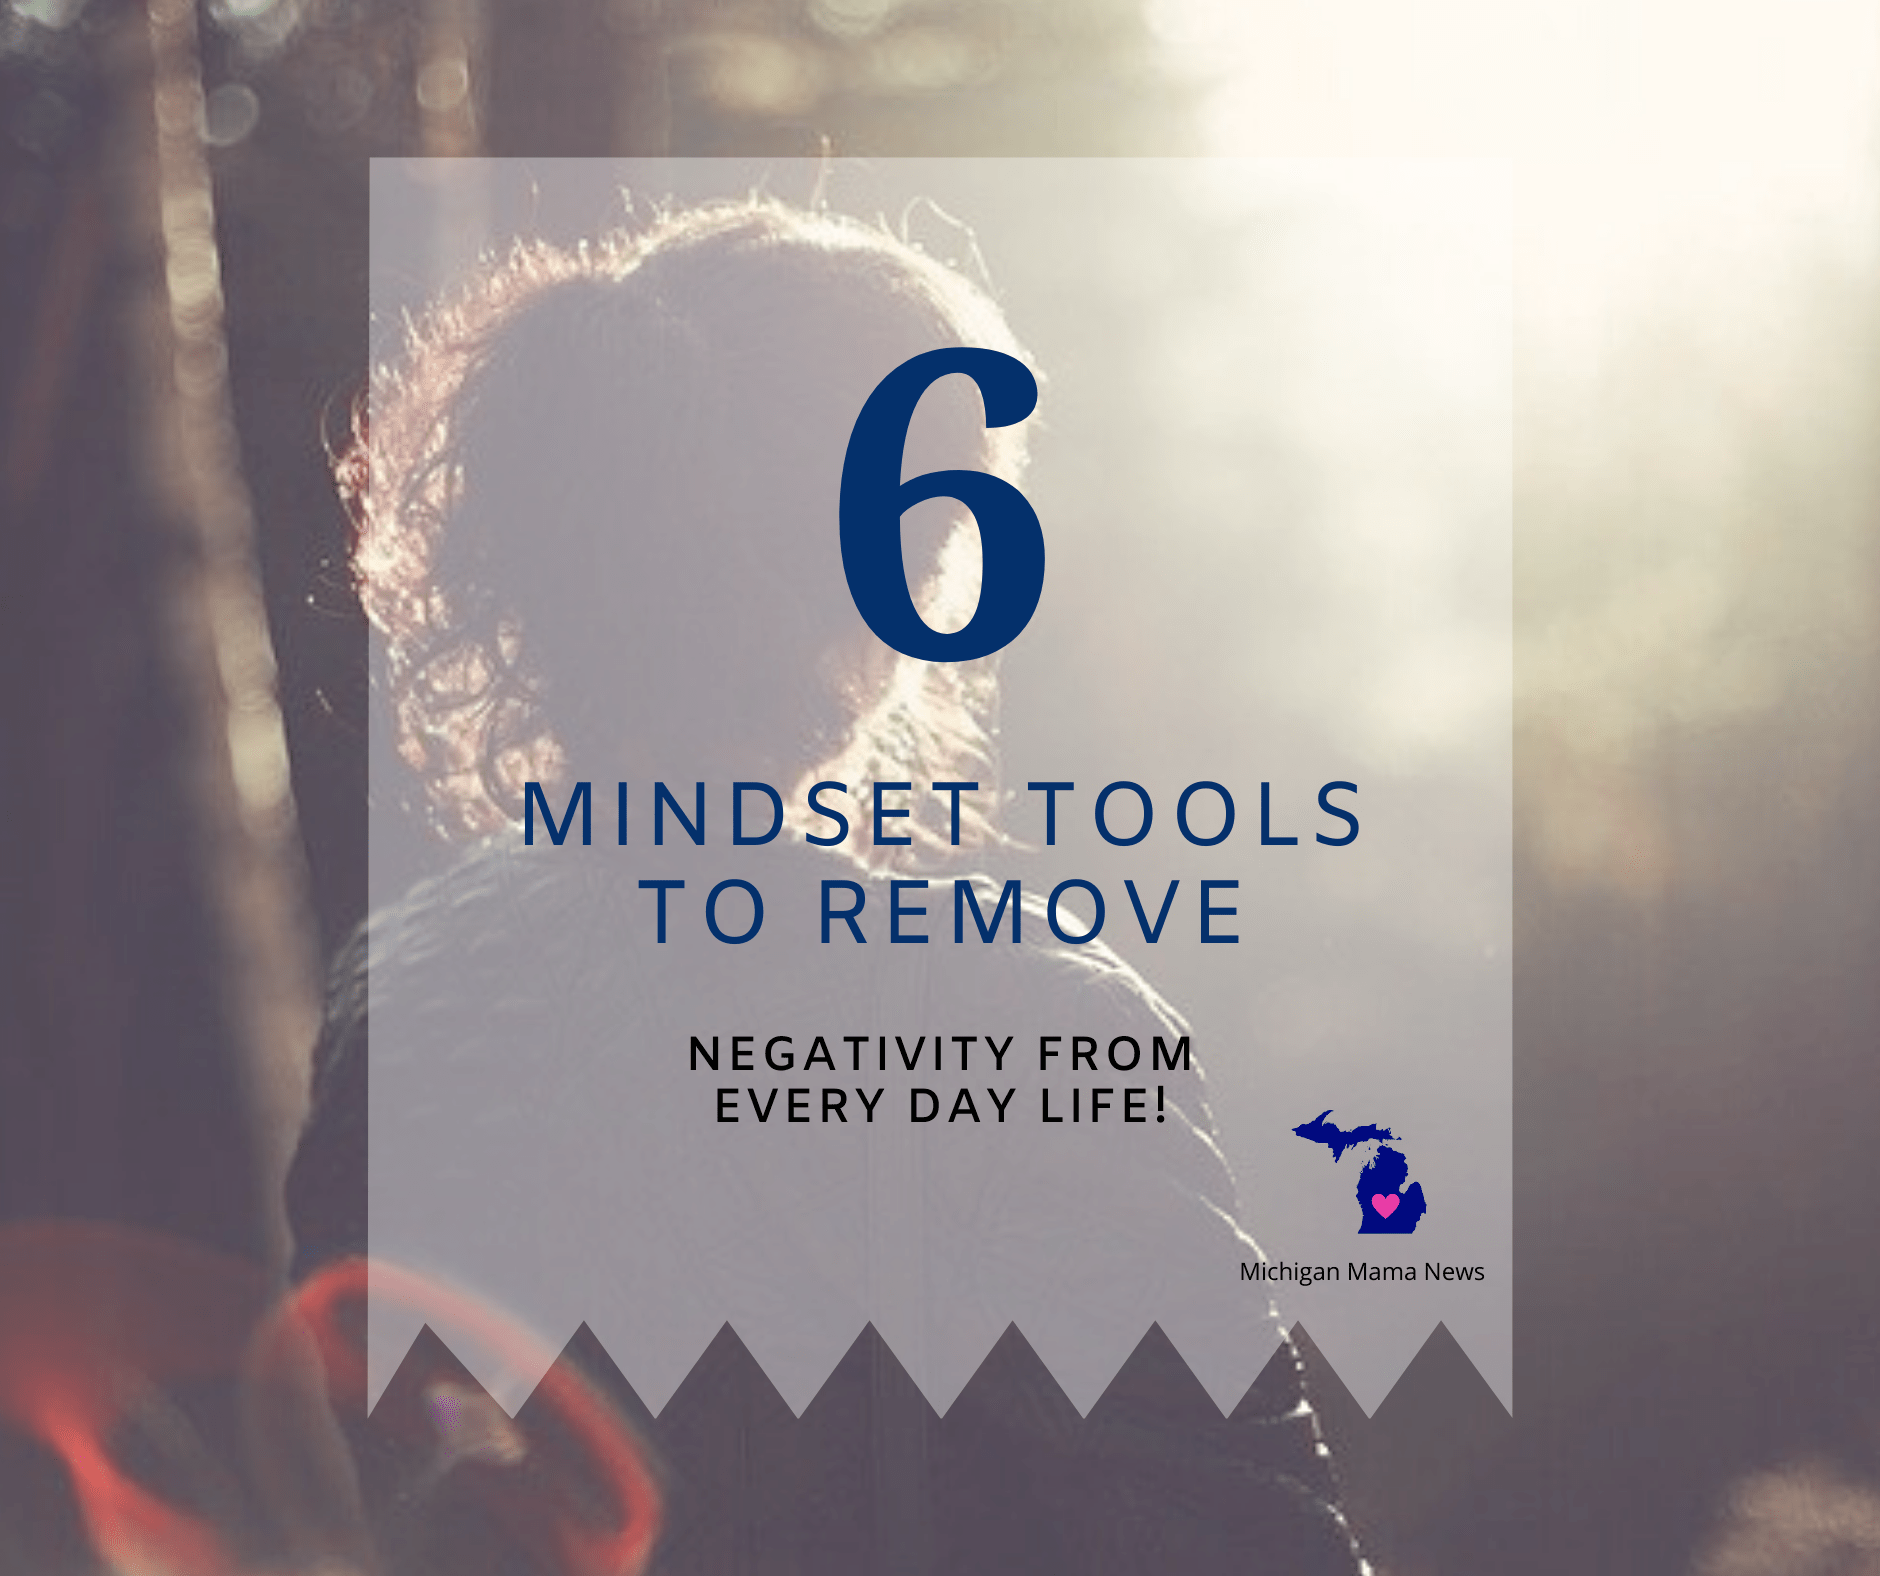 6 Mindset Tools to Remove Negativity From Every Day Life